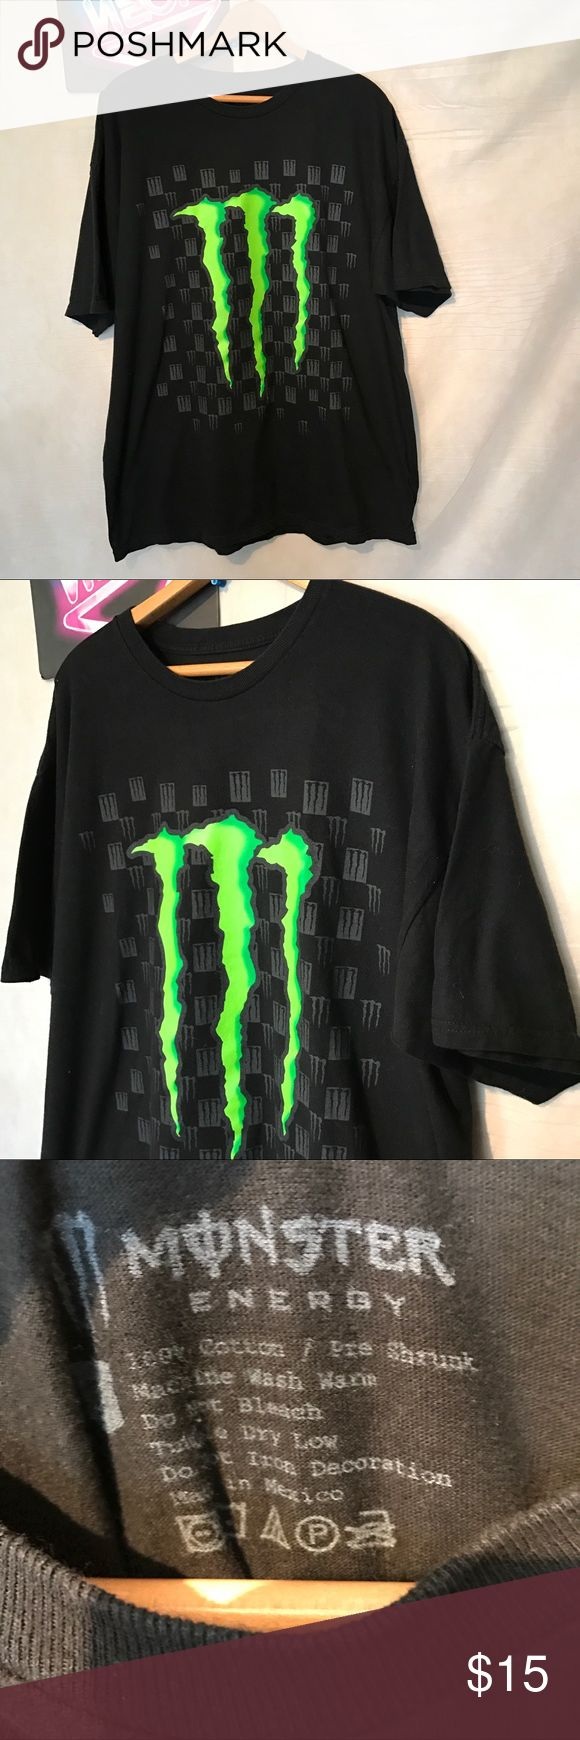 Monster energy drink Men's black t-shirt size L Monster energy drink Men's black t-shirt size large, gently used with no holes or rips, ships from smoke free environment, A1314, thank you monster energy drink Shirts Tees - Short Sleeve